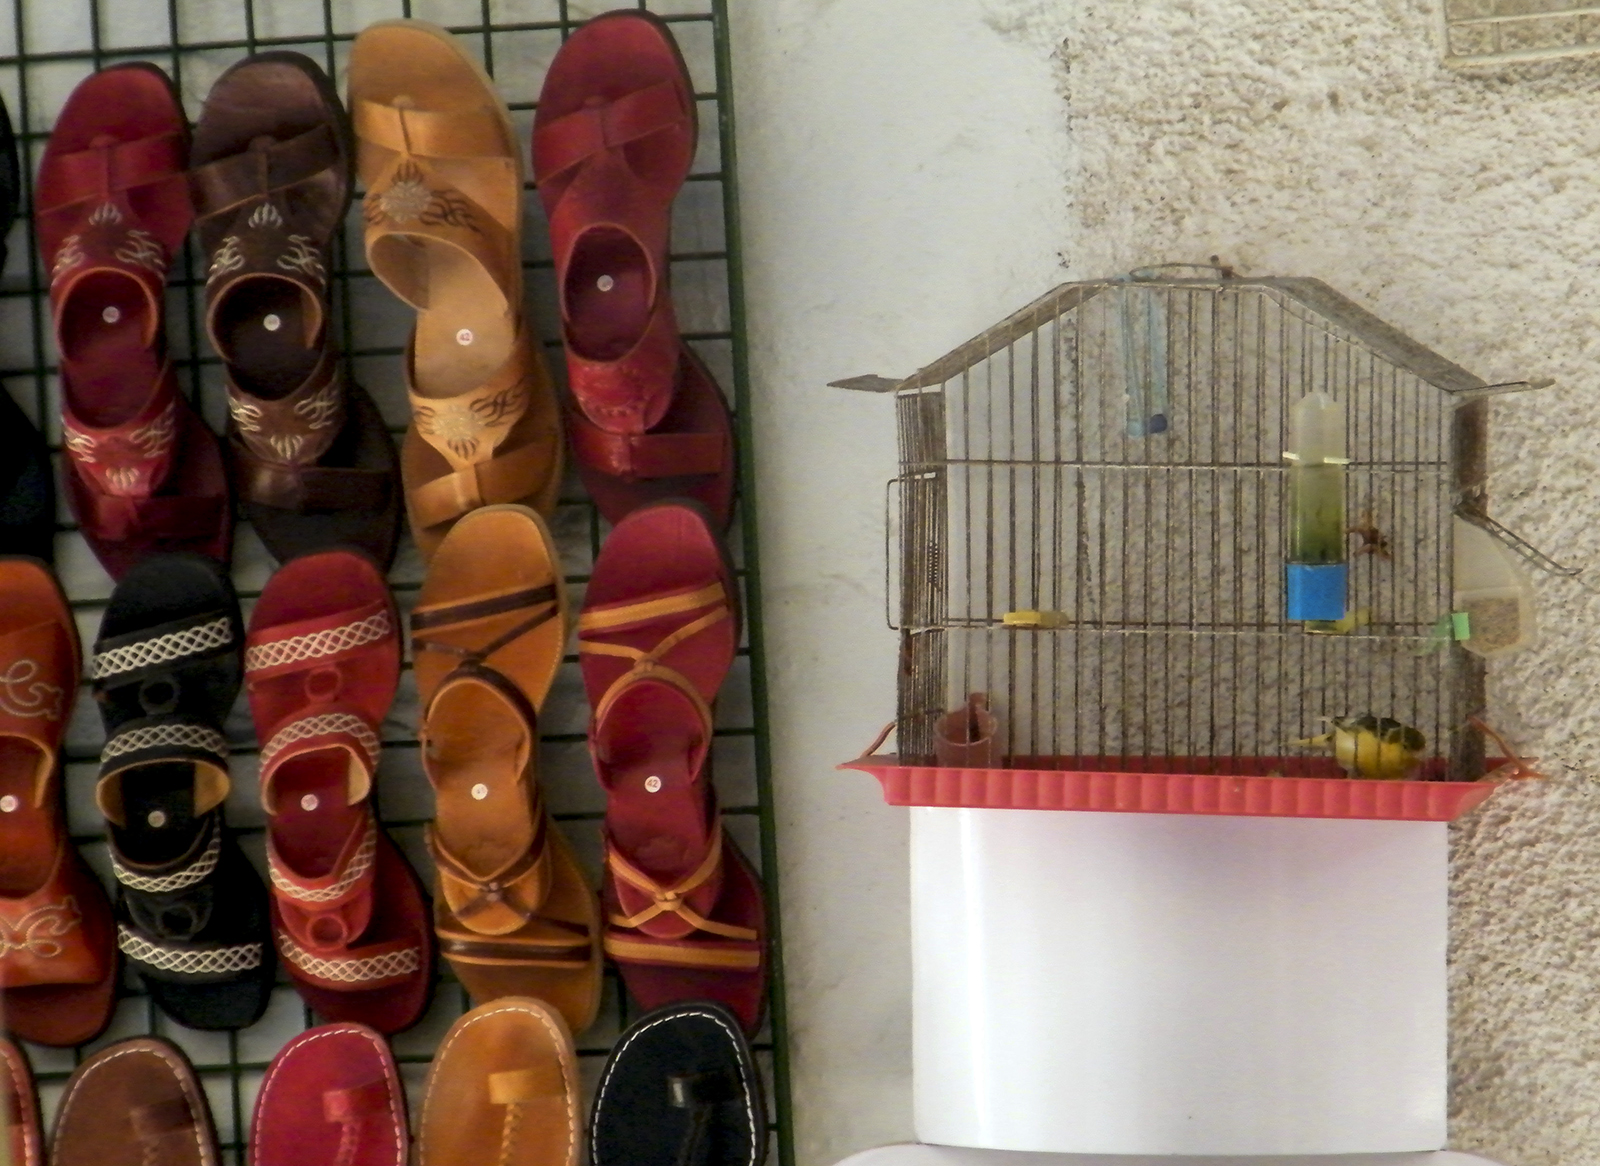 007 Sandals and Birds